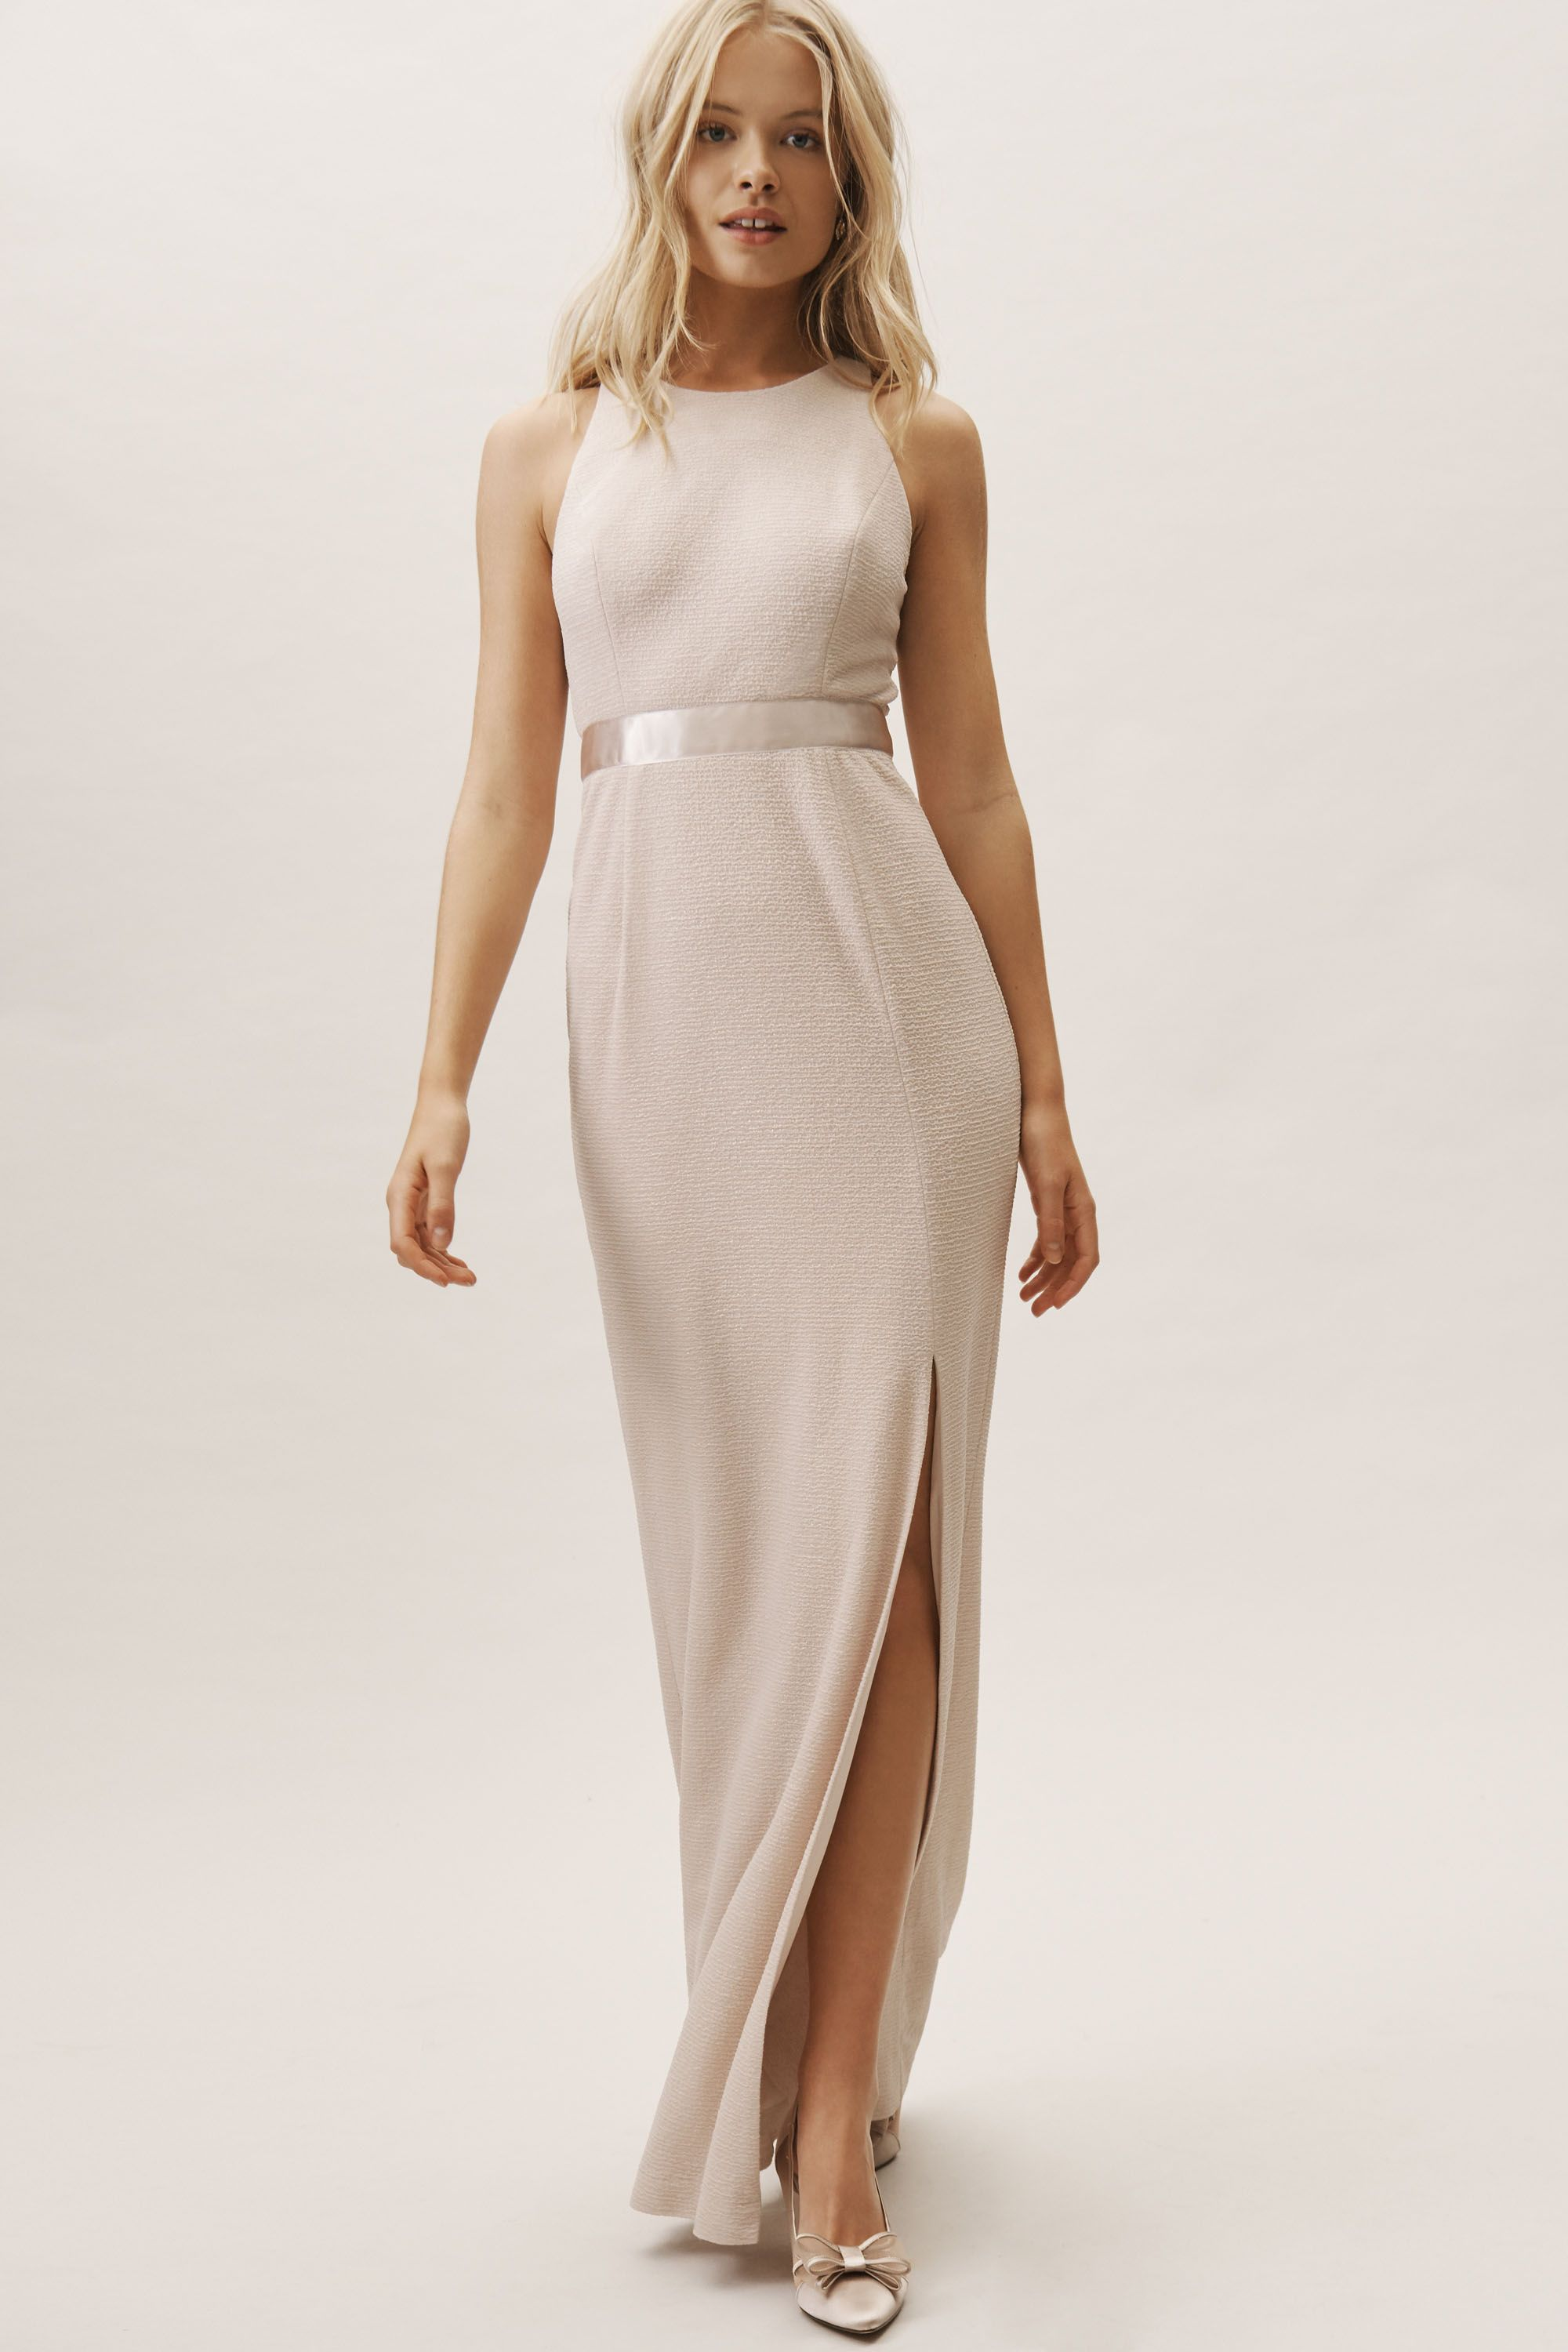 1125cc853344 Idris Dress Champagne in Bridesmaids   Bridal Party